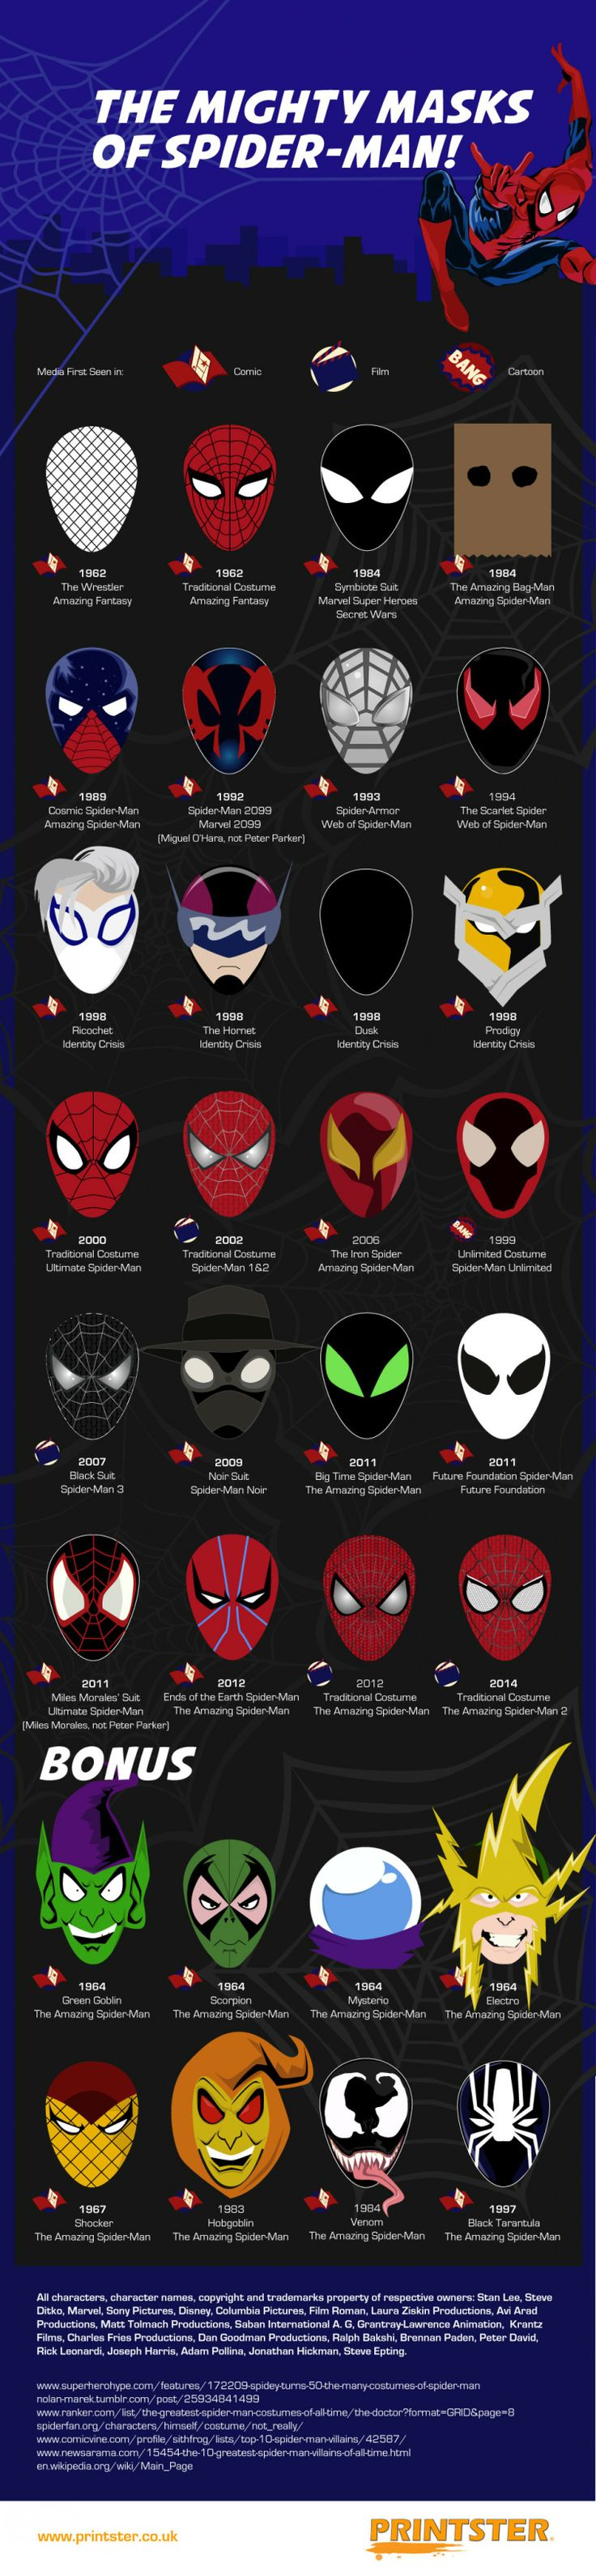 The Mightly Masks of Spider-Man #infographic #infografía